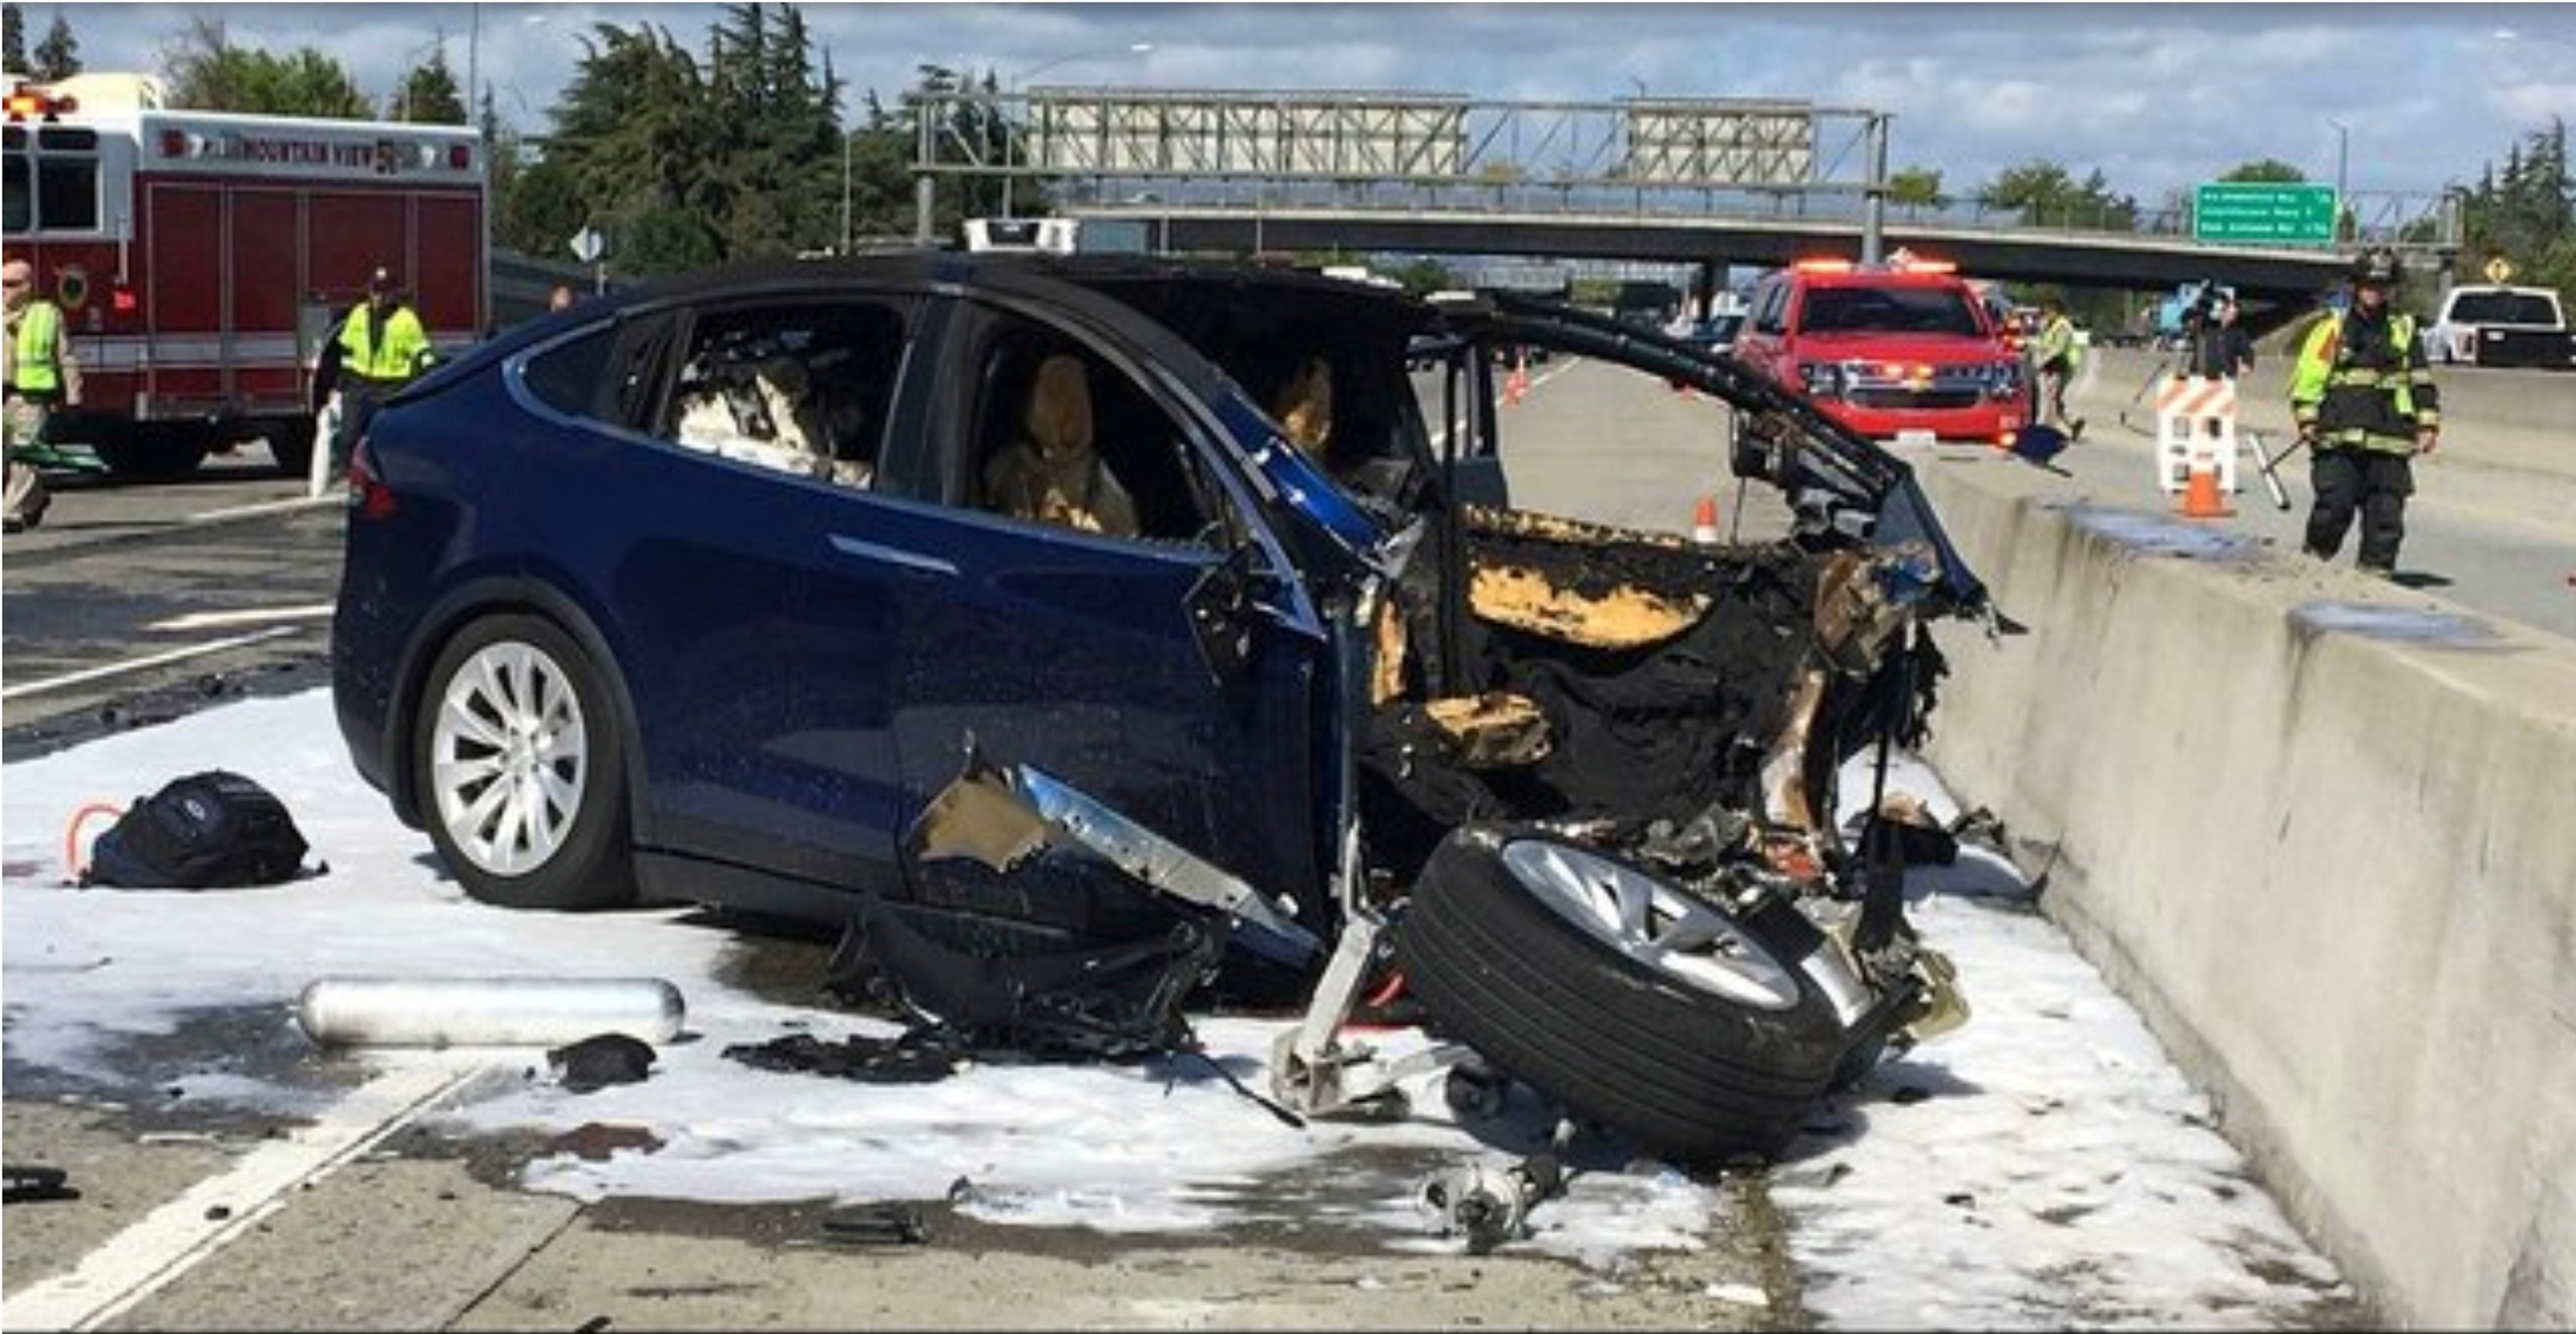 Shocking video shows Tesla bursting into flames 'out of the